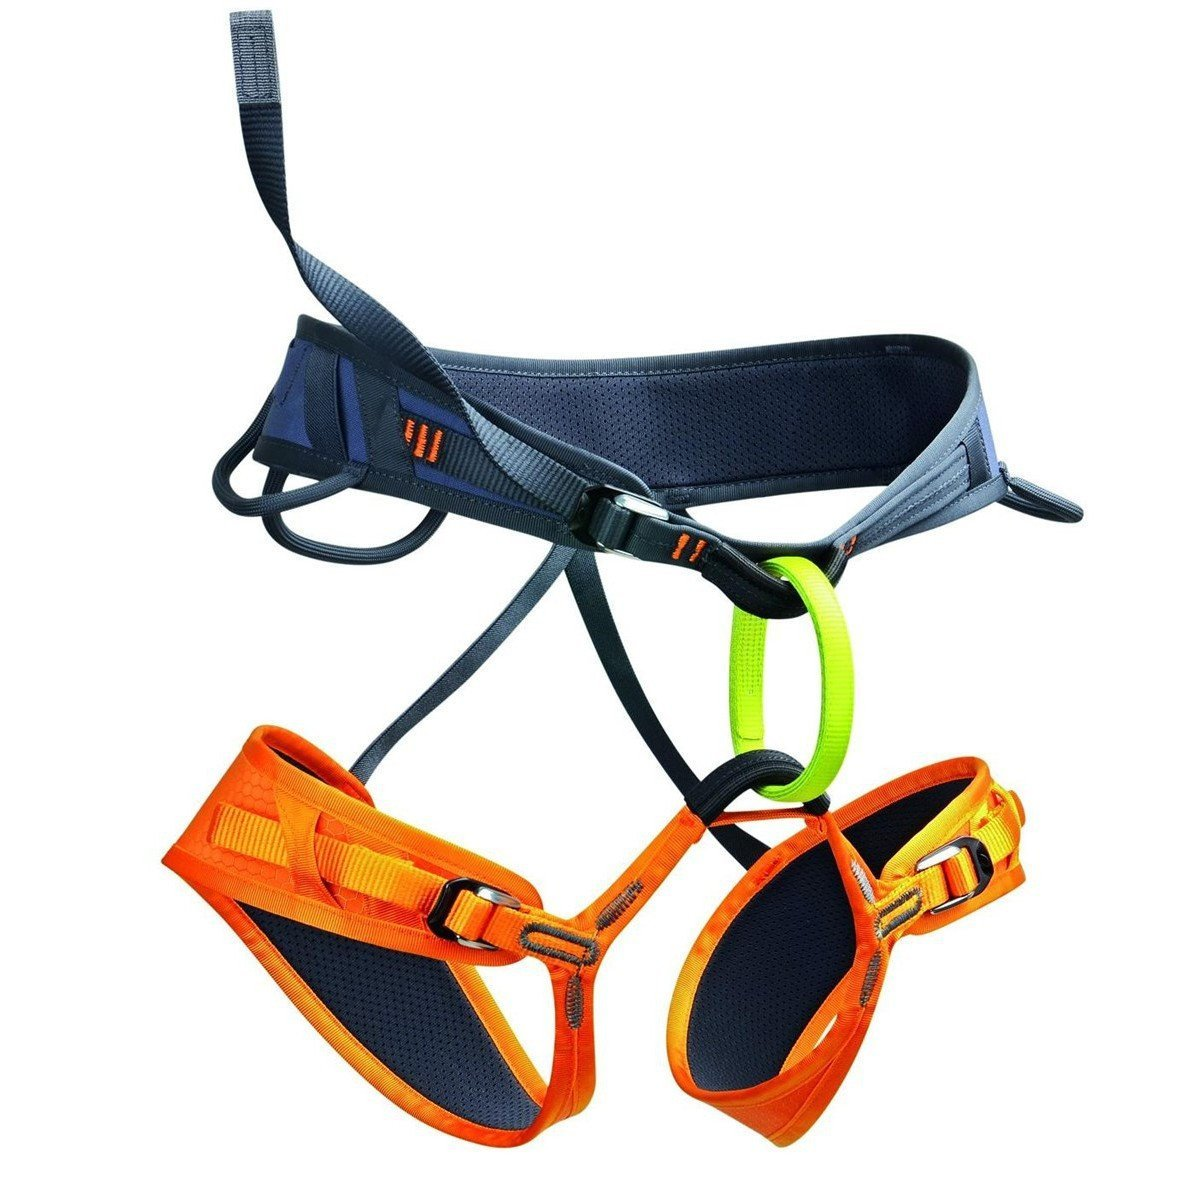 Edelrid Wing Harness blue, orange and green